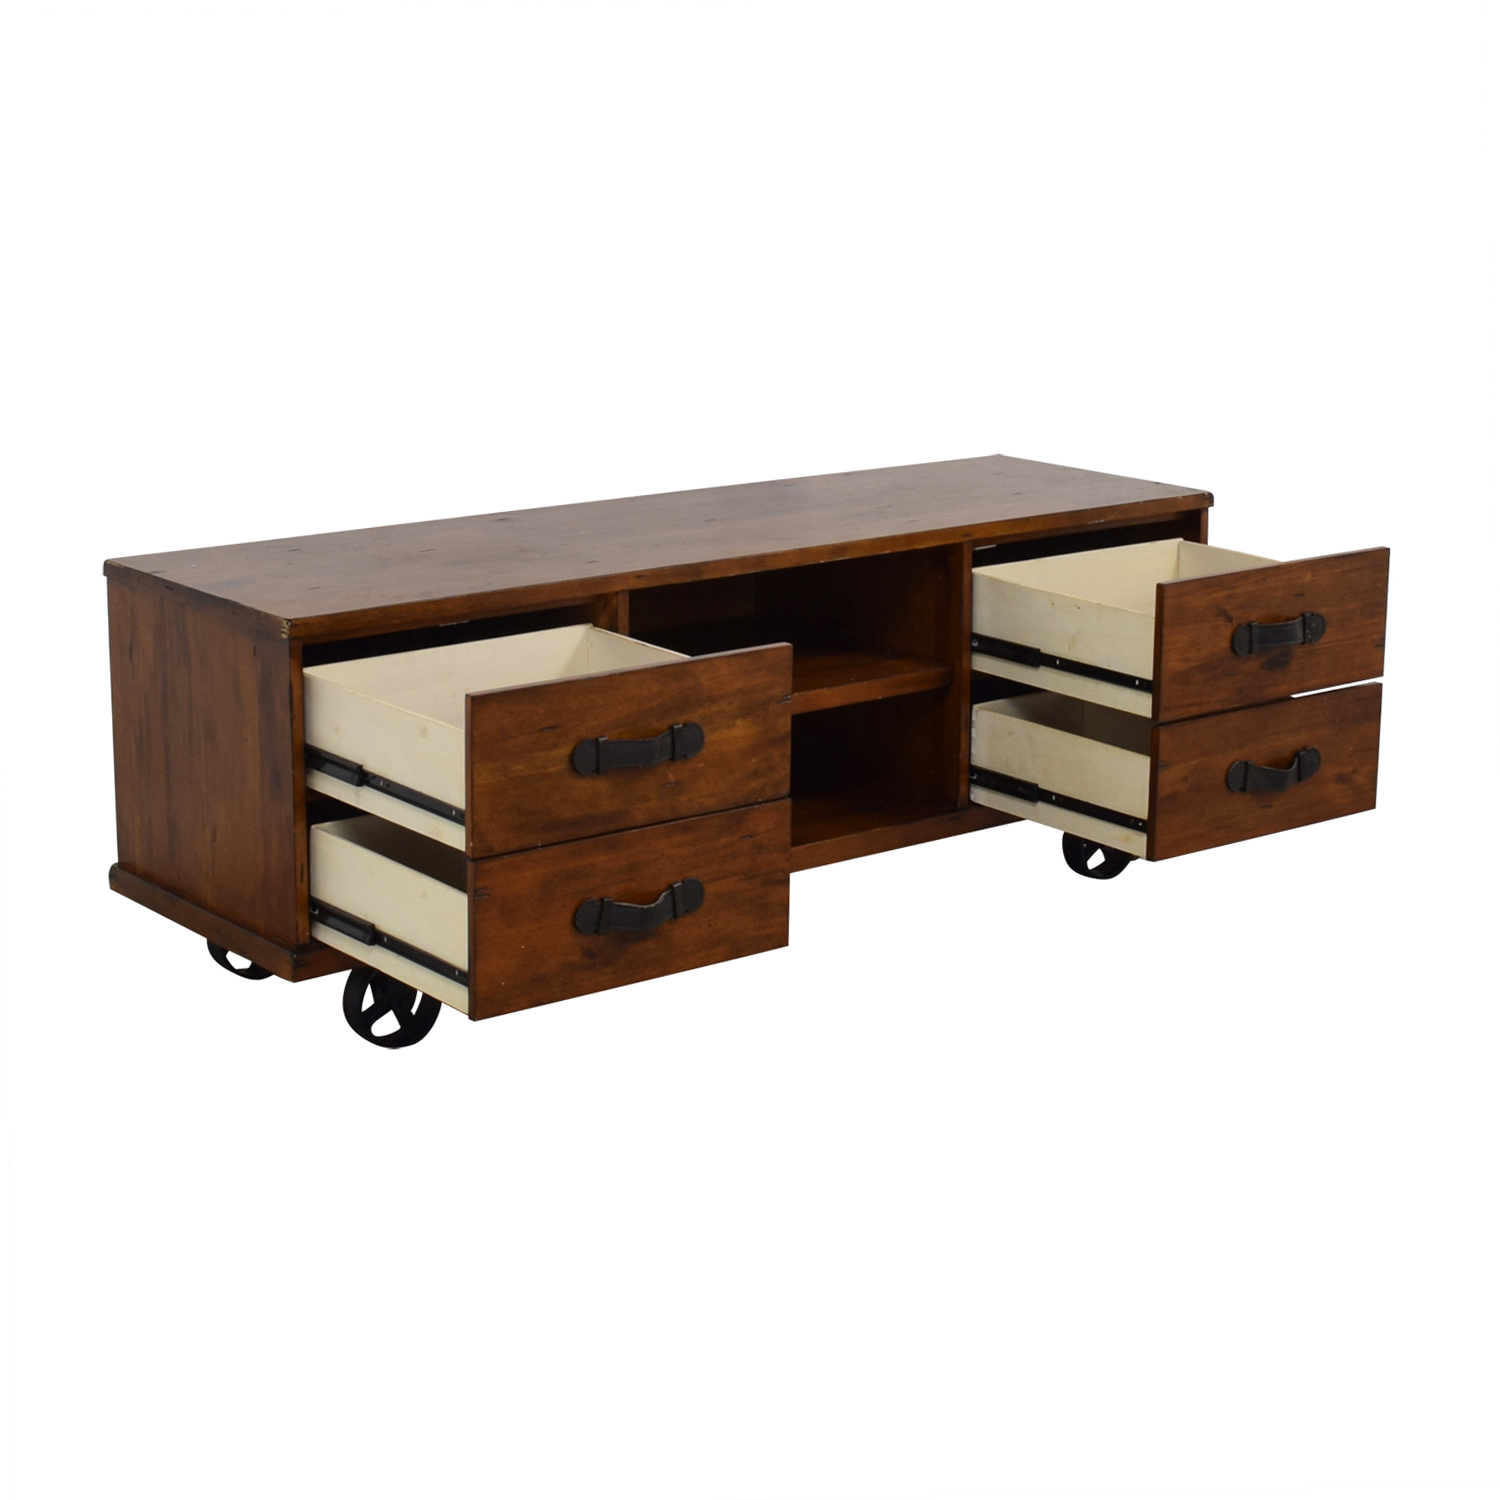 A & G Merch A & G Merch Wood Four-Drawer Media Console on sale